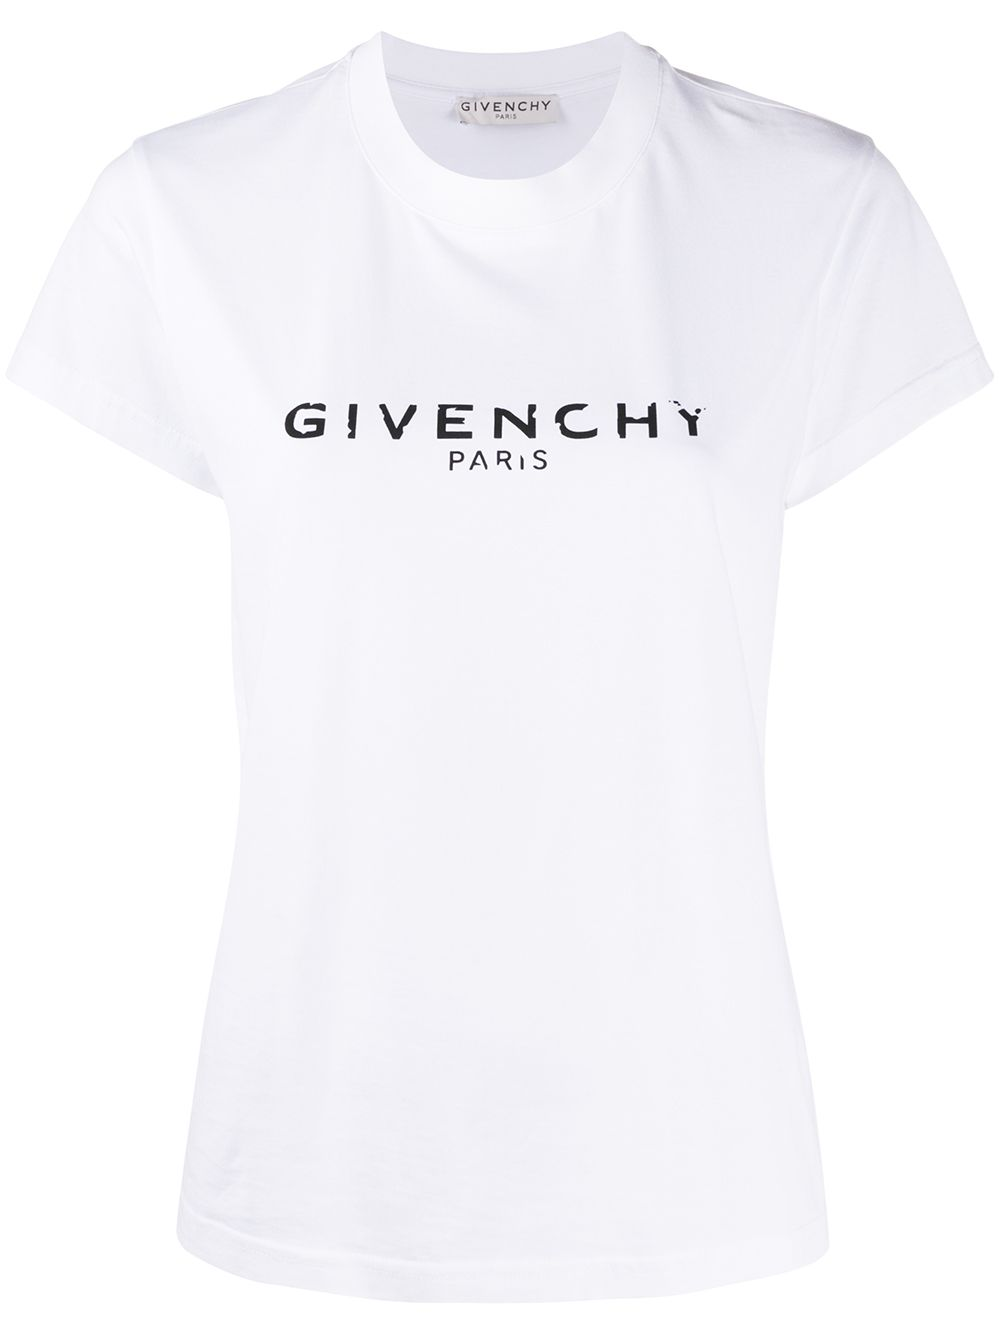 white cotton antique-effect Givenchy logo print T-shirt  GIVENCHY      BW708H3Z0Y100